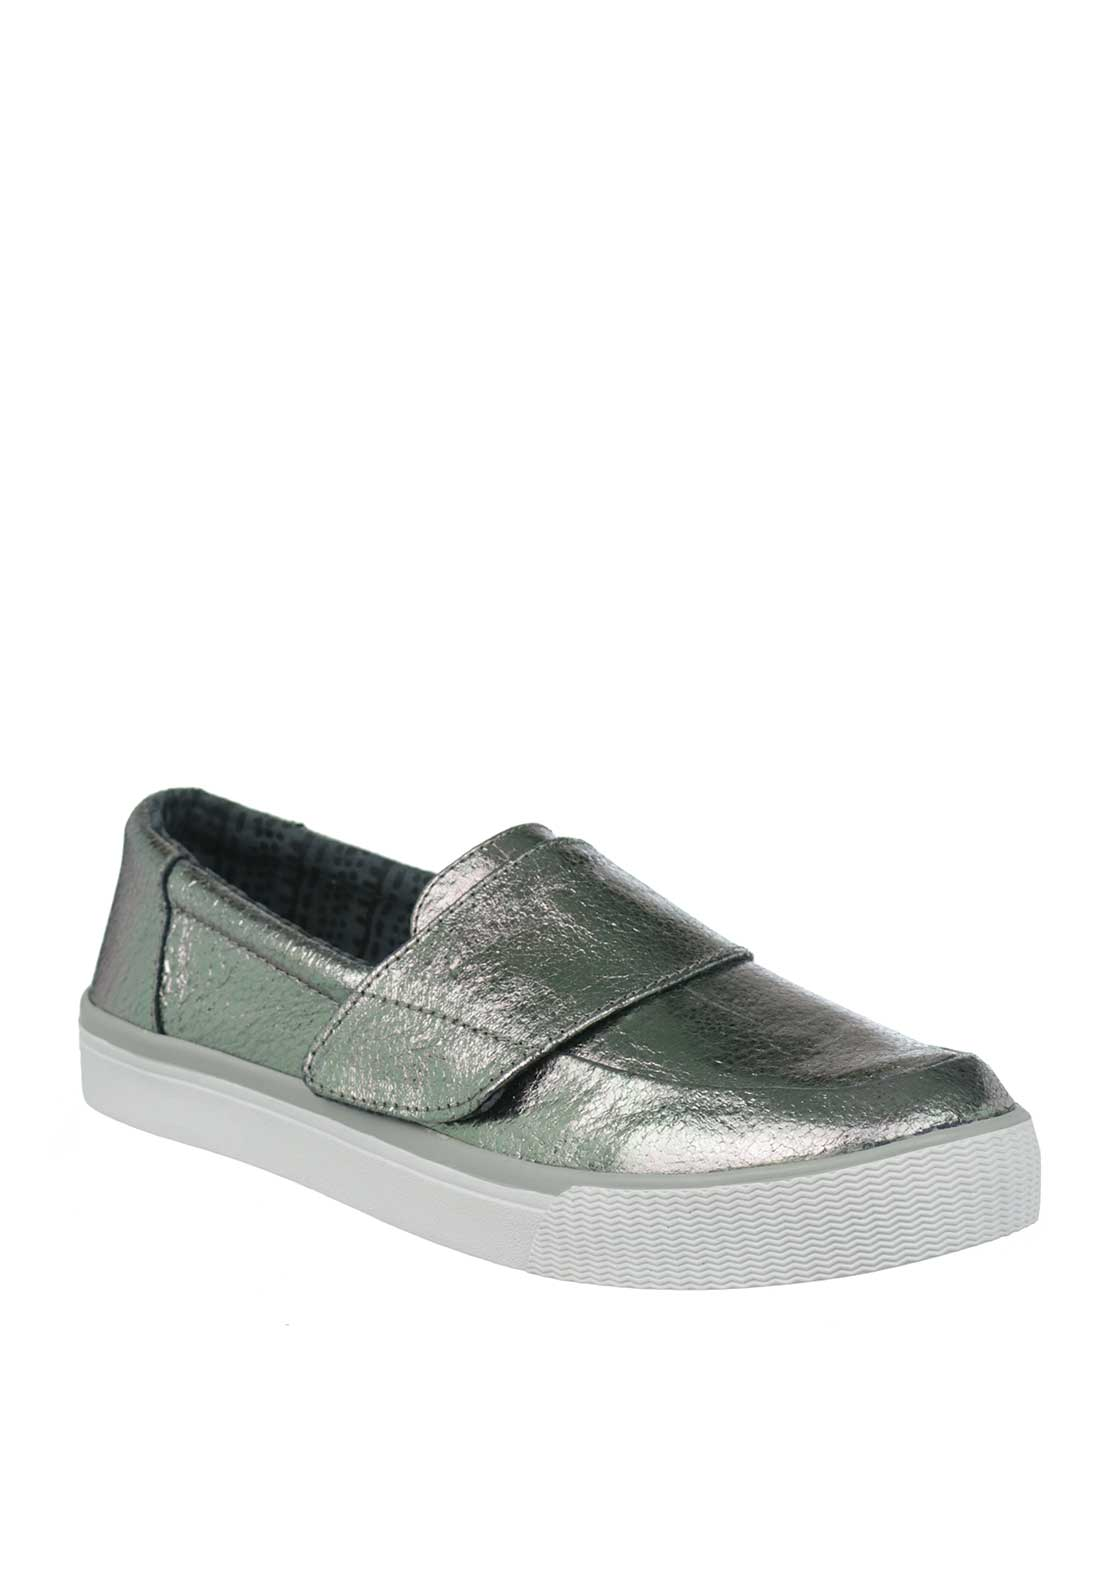 TOMS Womens Altair Metallic Shoes, Silver